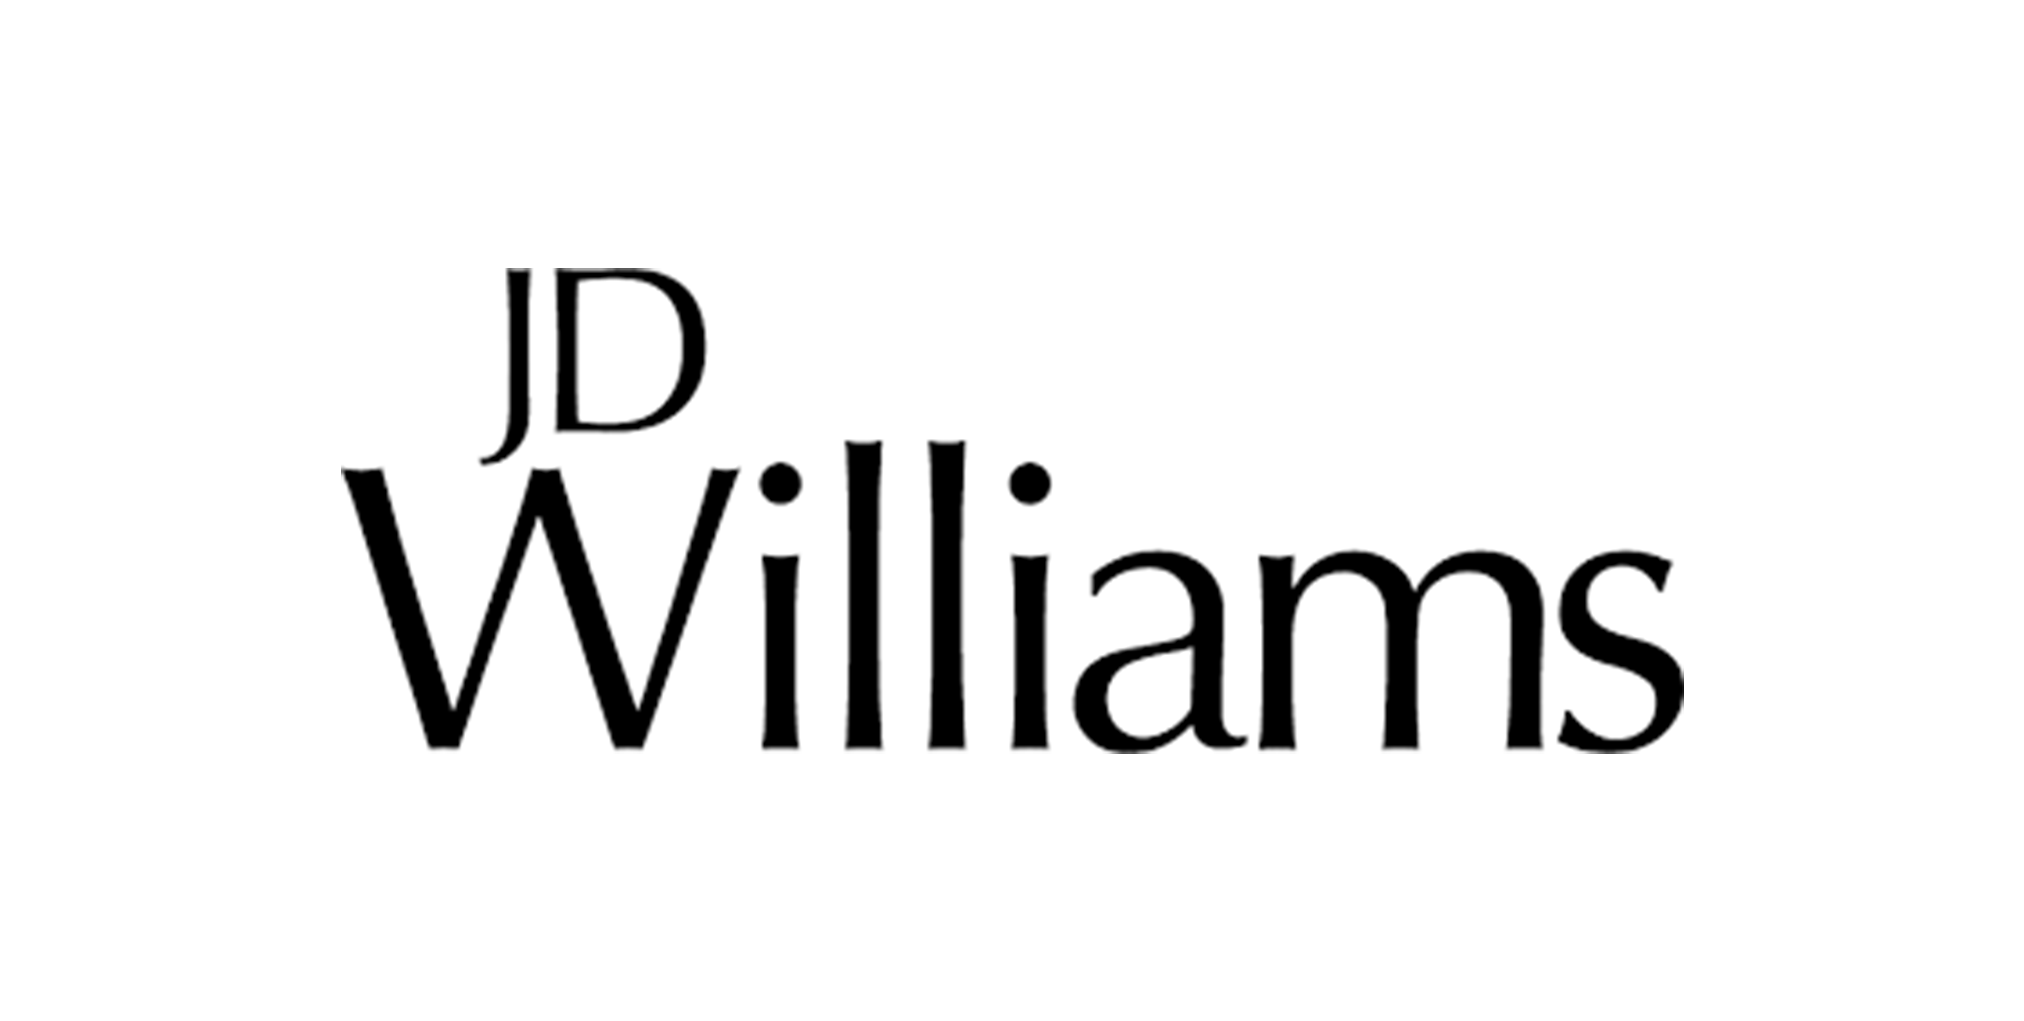 JD Williams' Head of Digital on fashion retail's personalised future